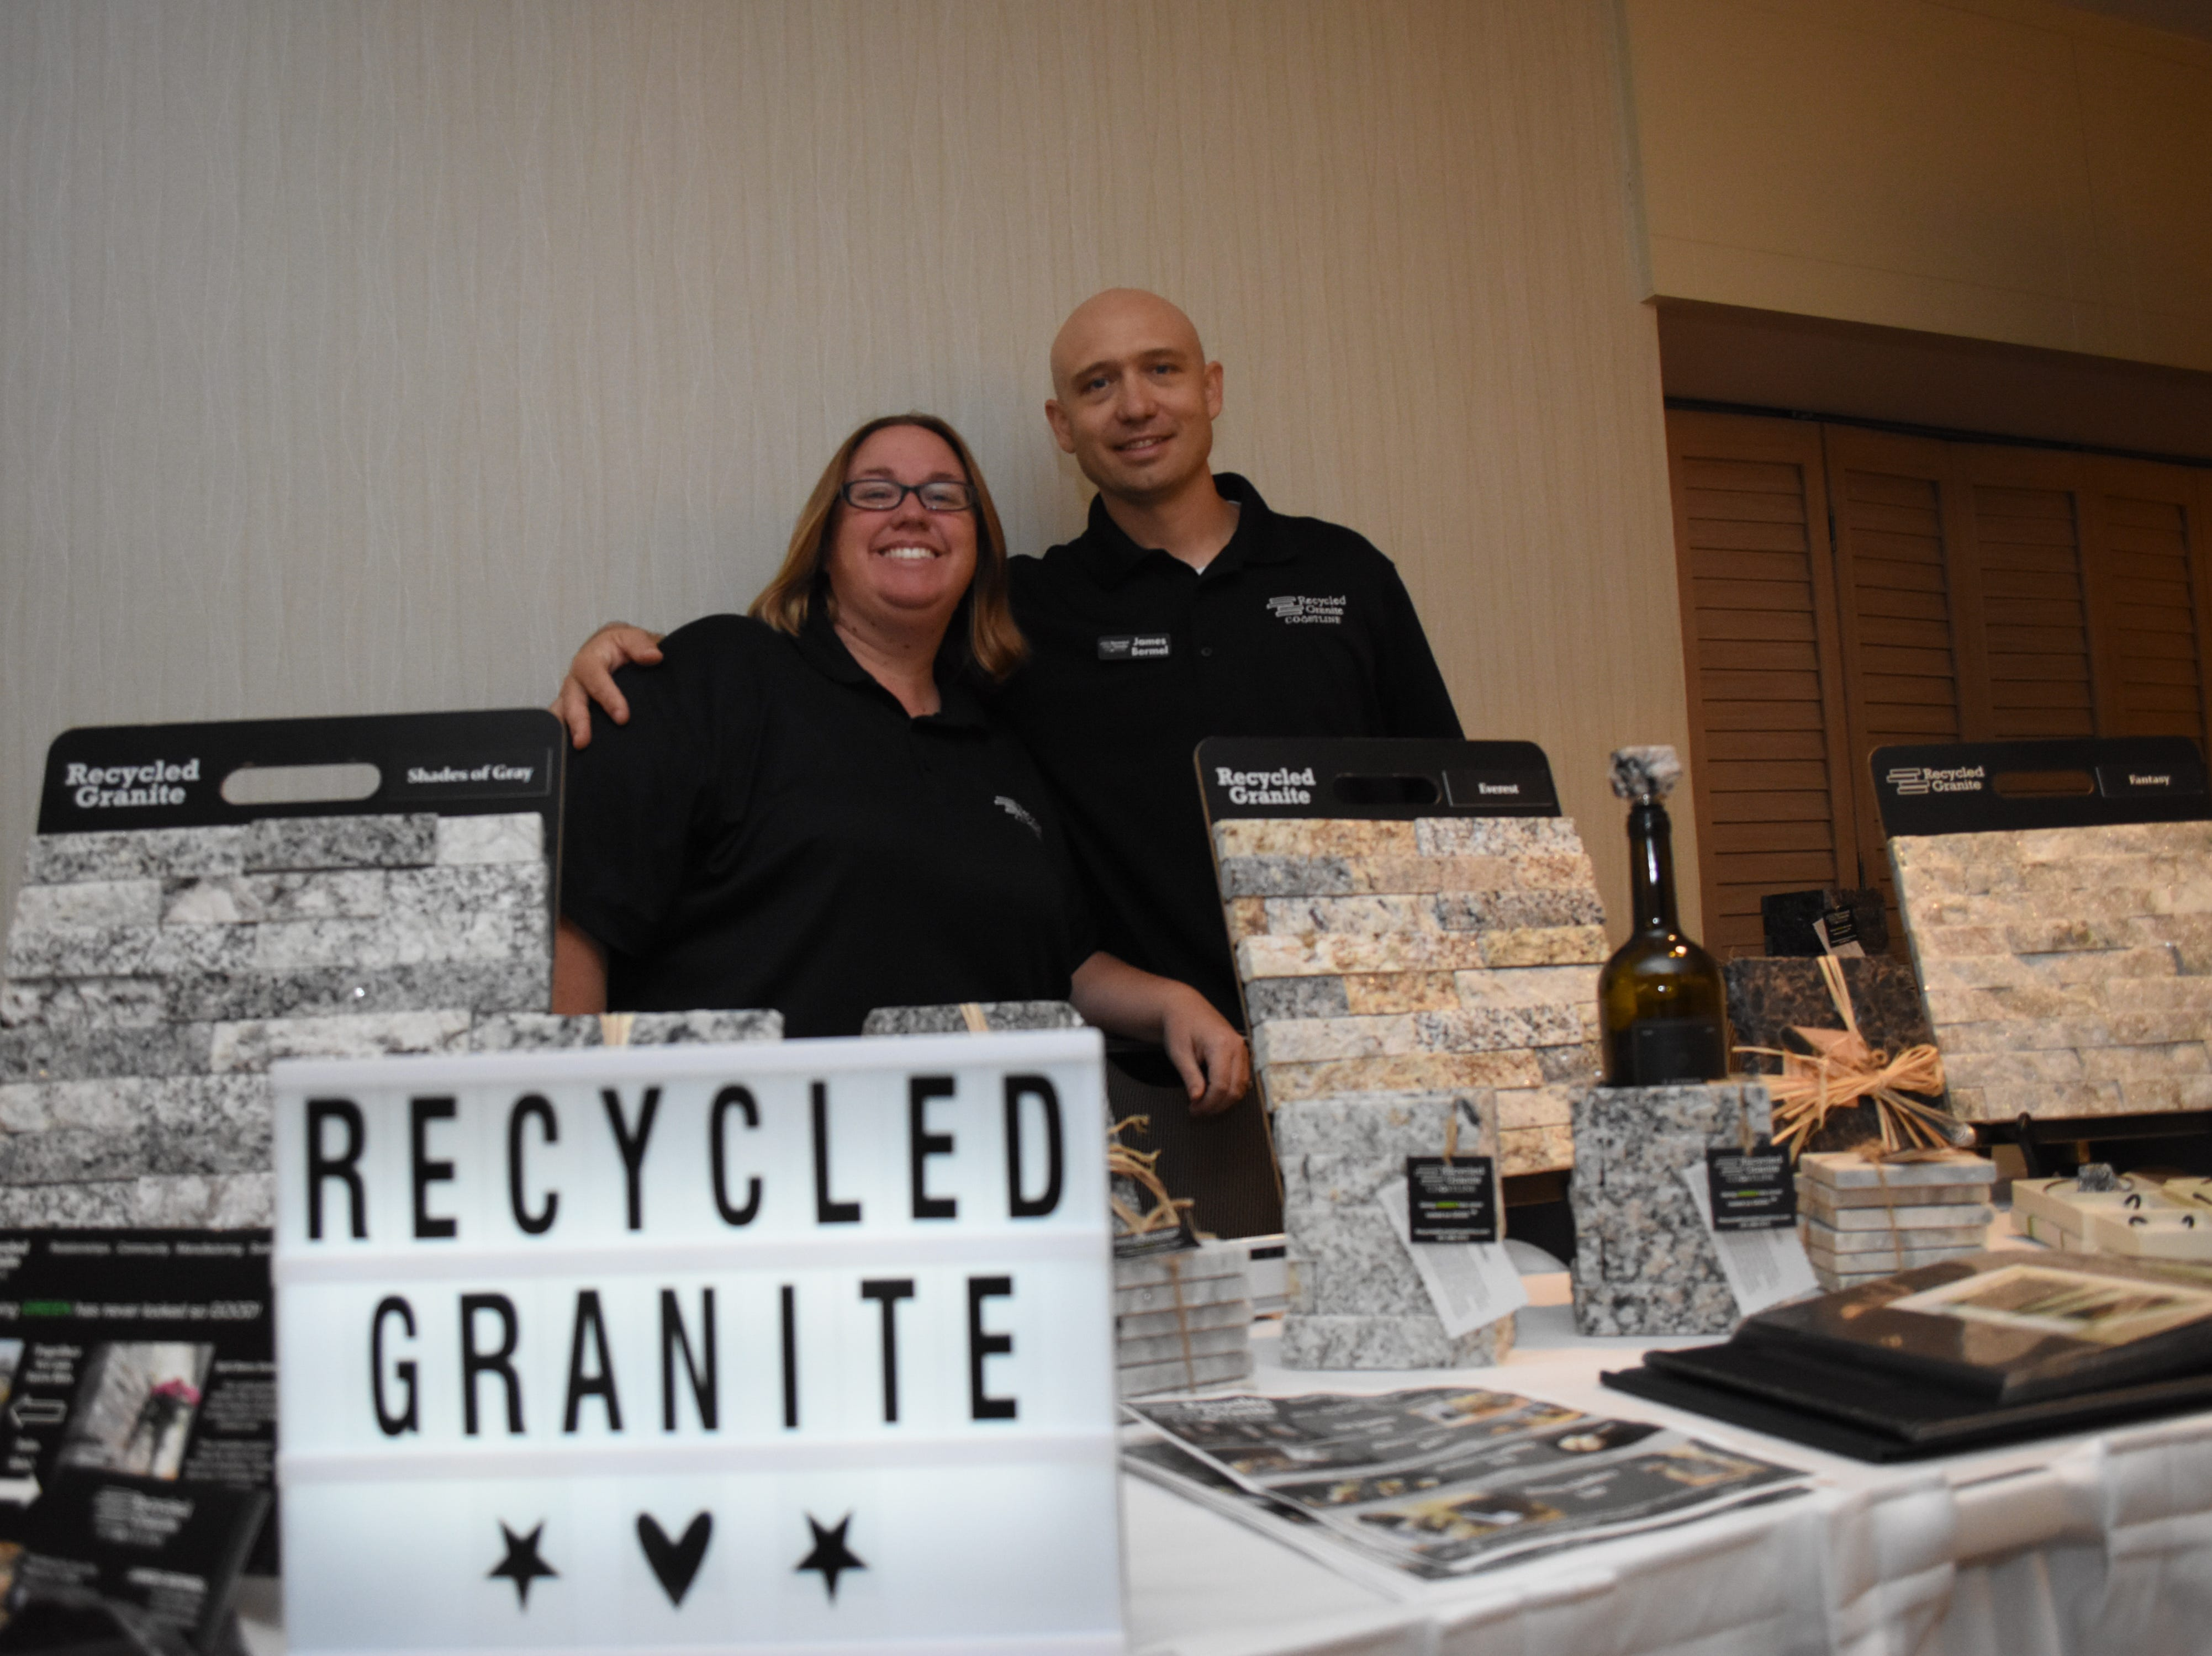 Pamela and James Bermel with Recycled Granite Coastline pose for a photo.